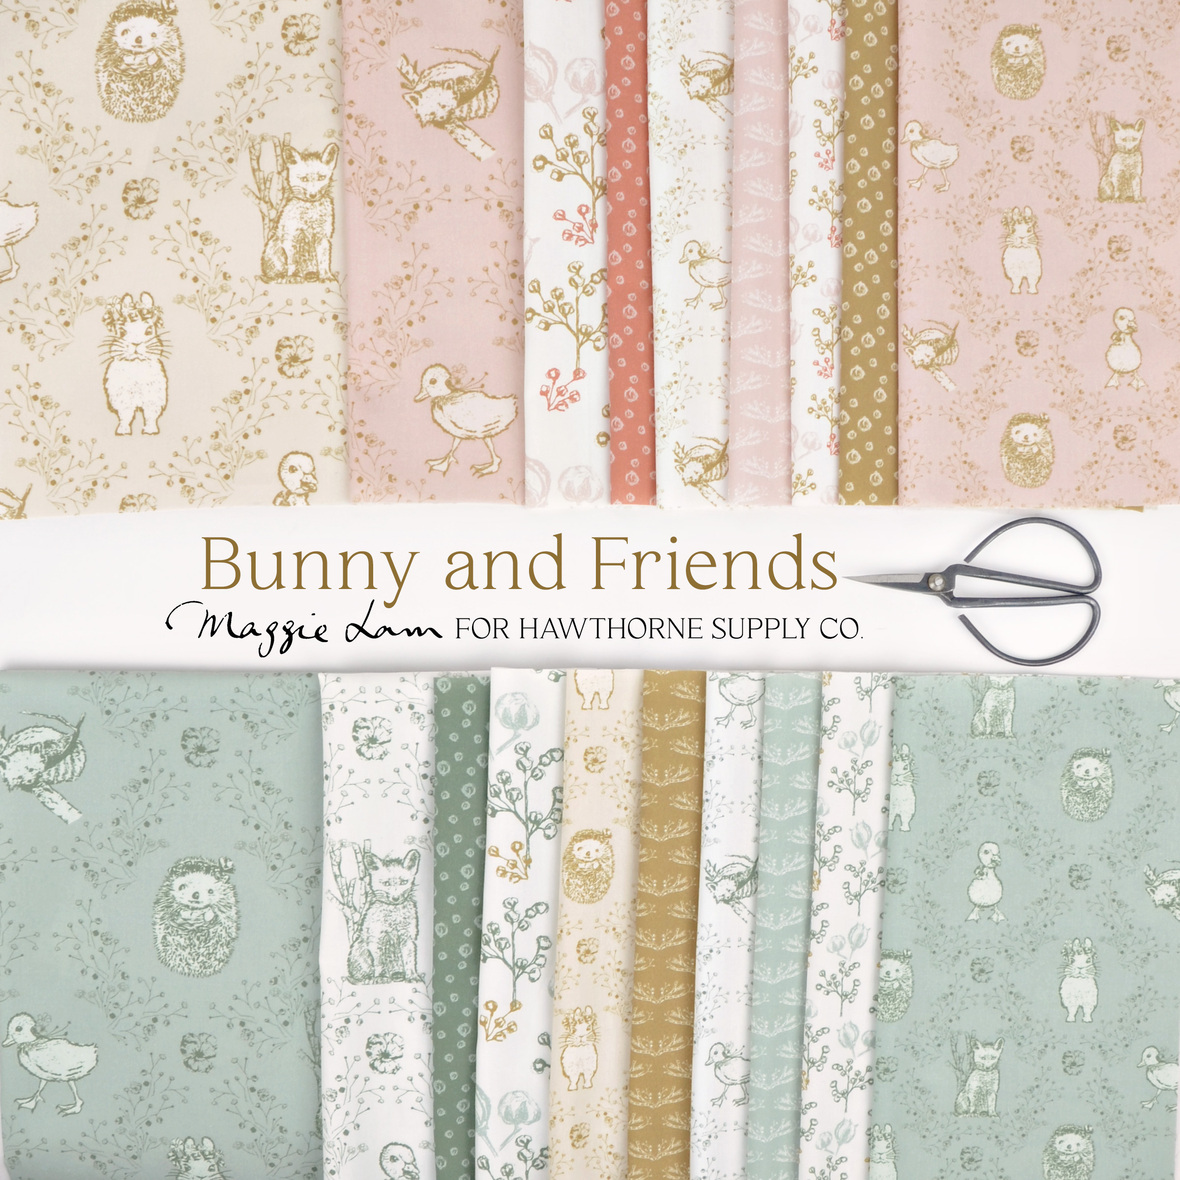 Bunny-and-Friends-Maggie-Lam-fabric-for-Hawthorne-Supply-Co